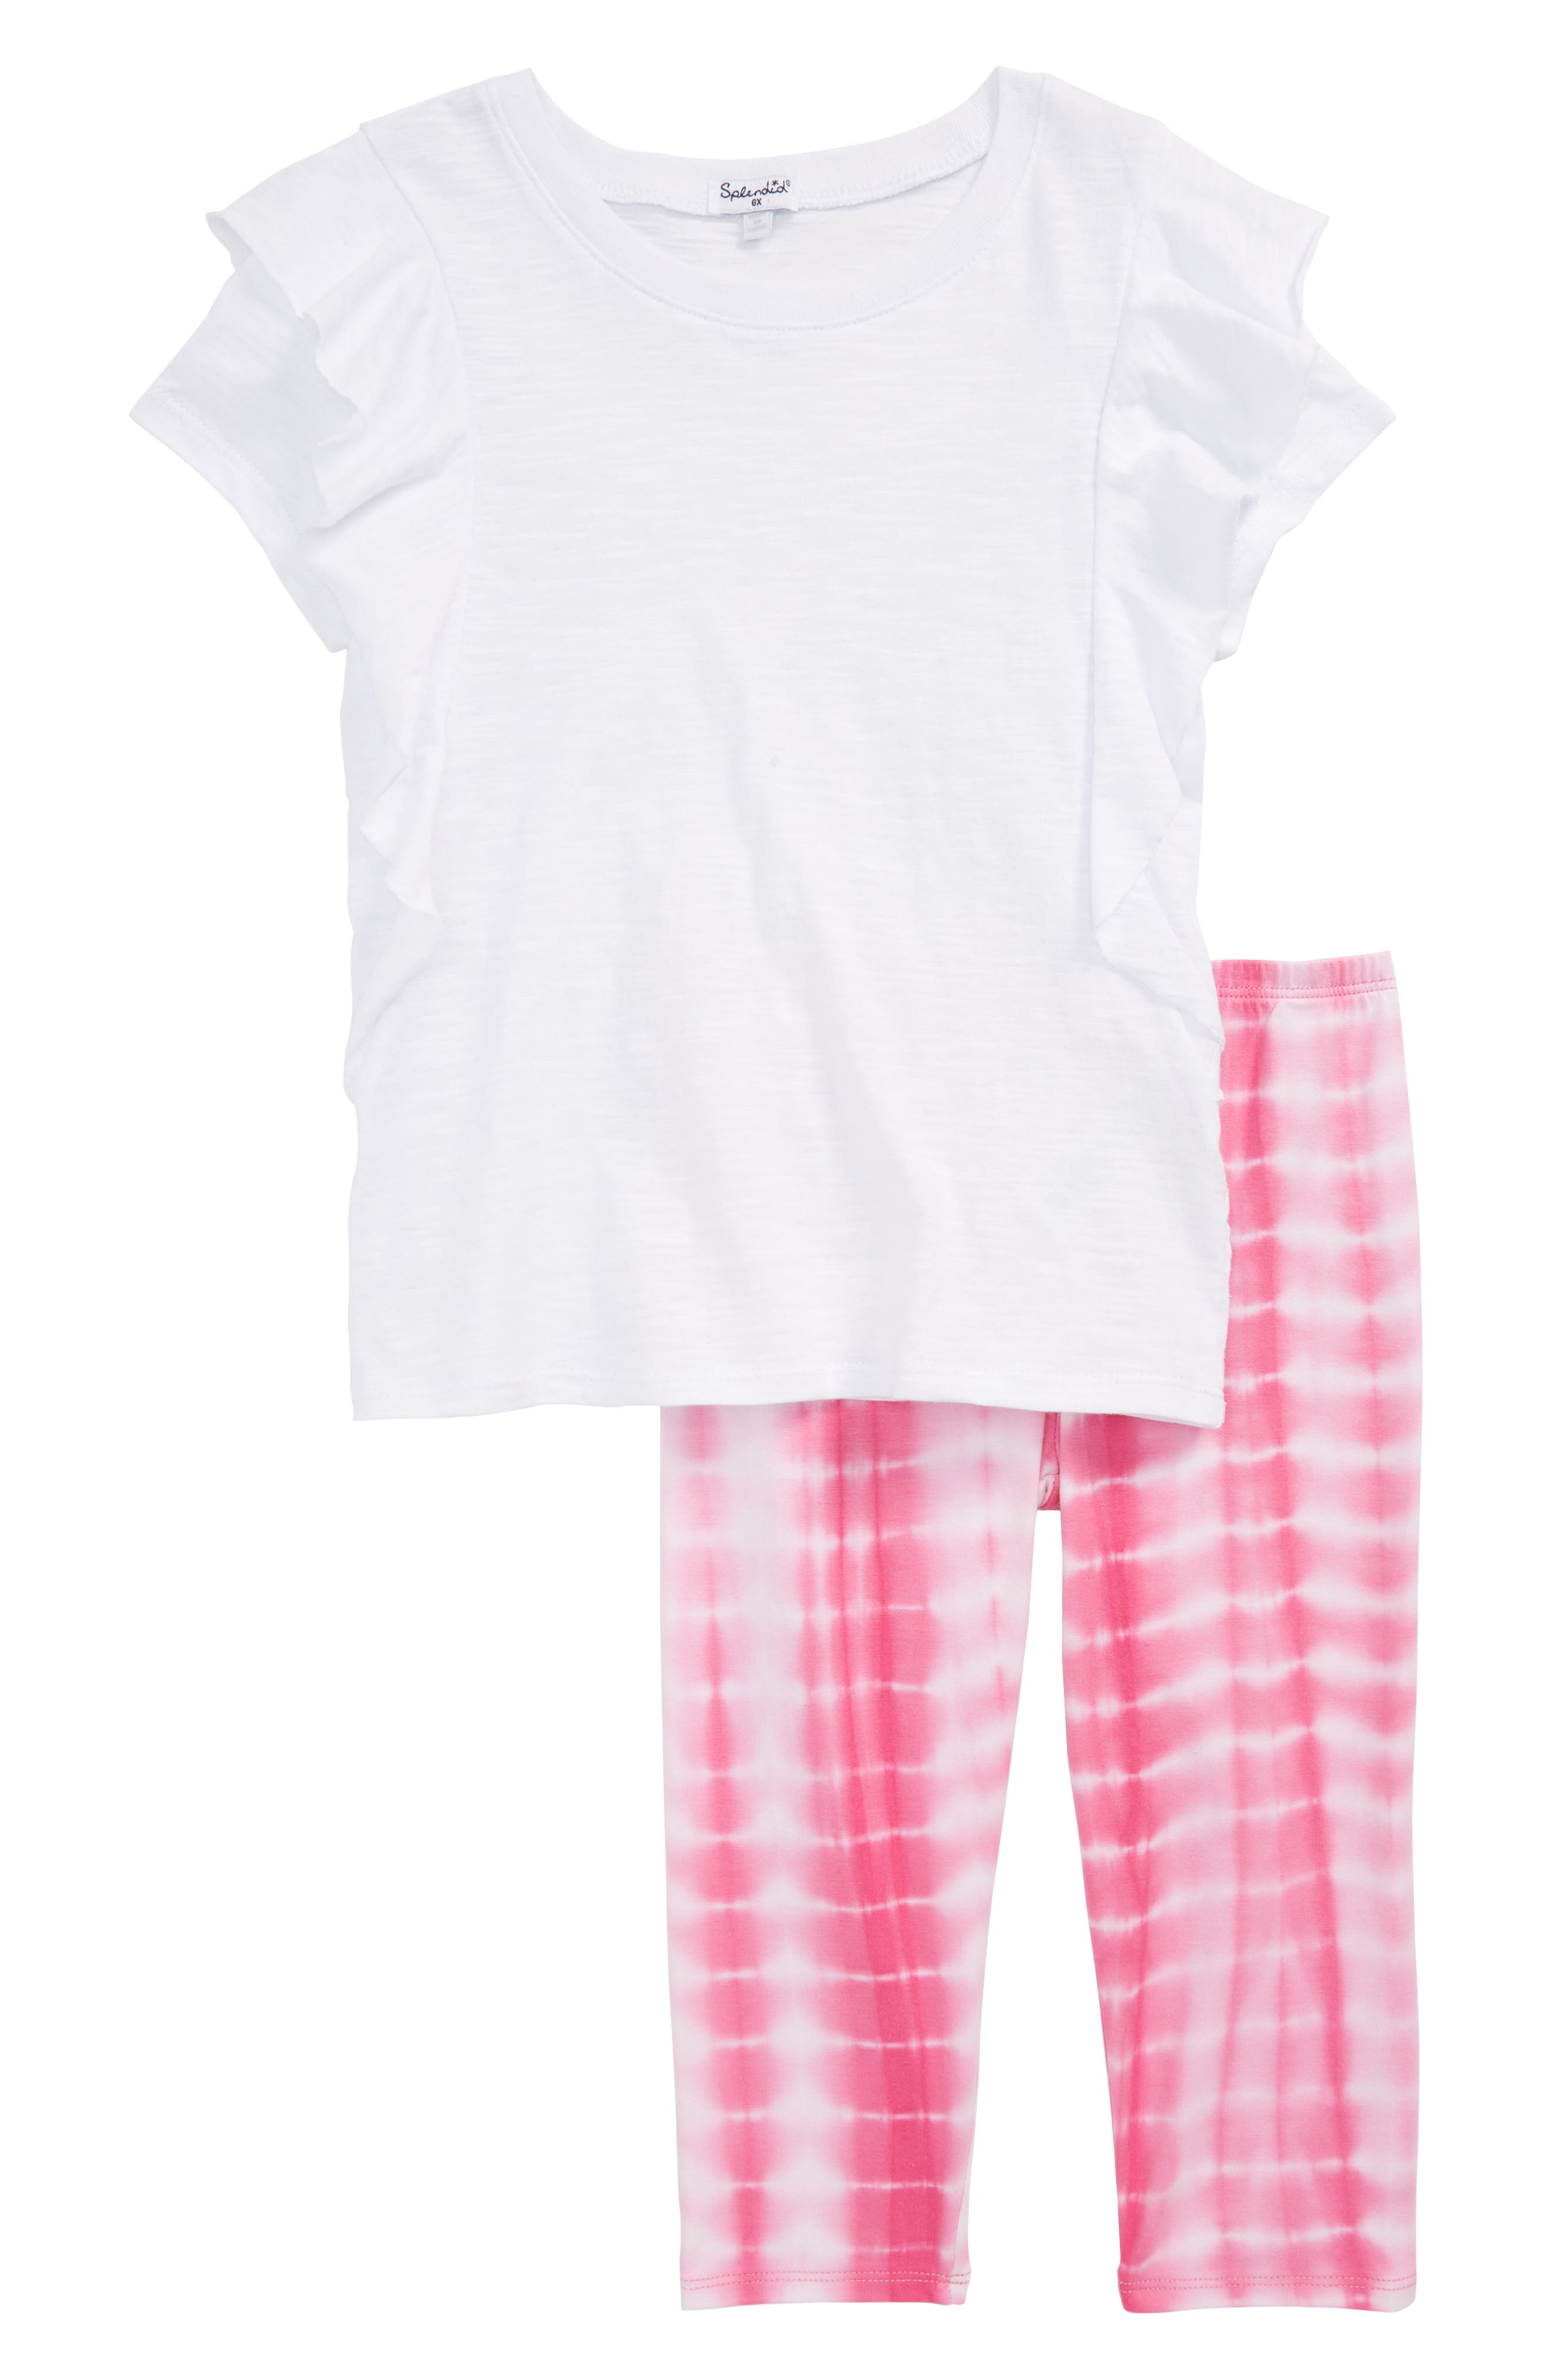 Main Image - Splendid Slub Tee & Tie Dye Leggings Set (Toddler Girls & Little Girls)